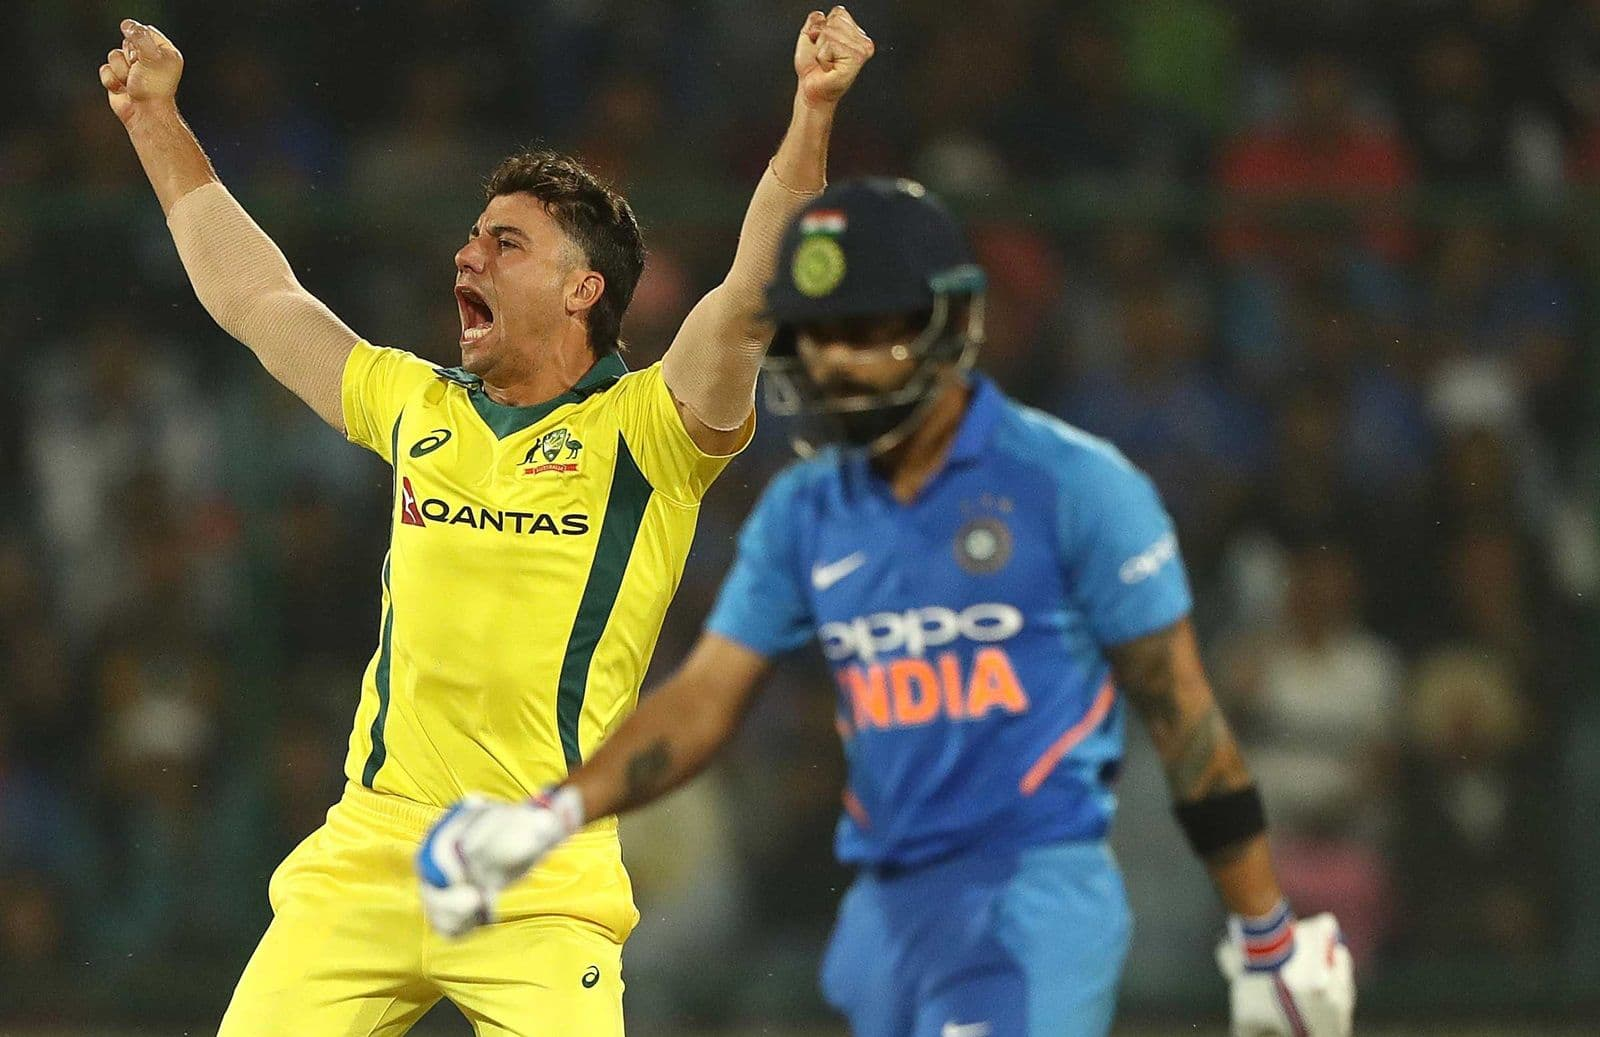 Marcus Stoinis celebrates getting Virat Kohli for 20.